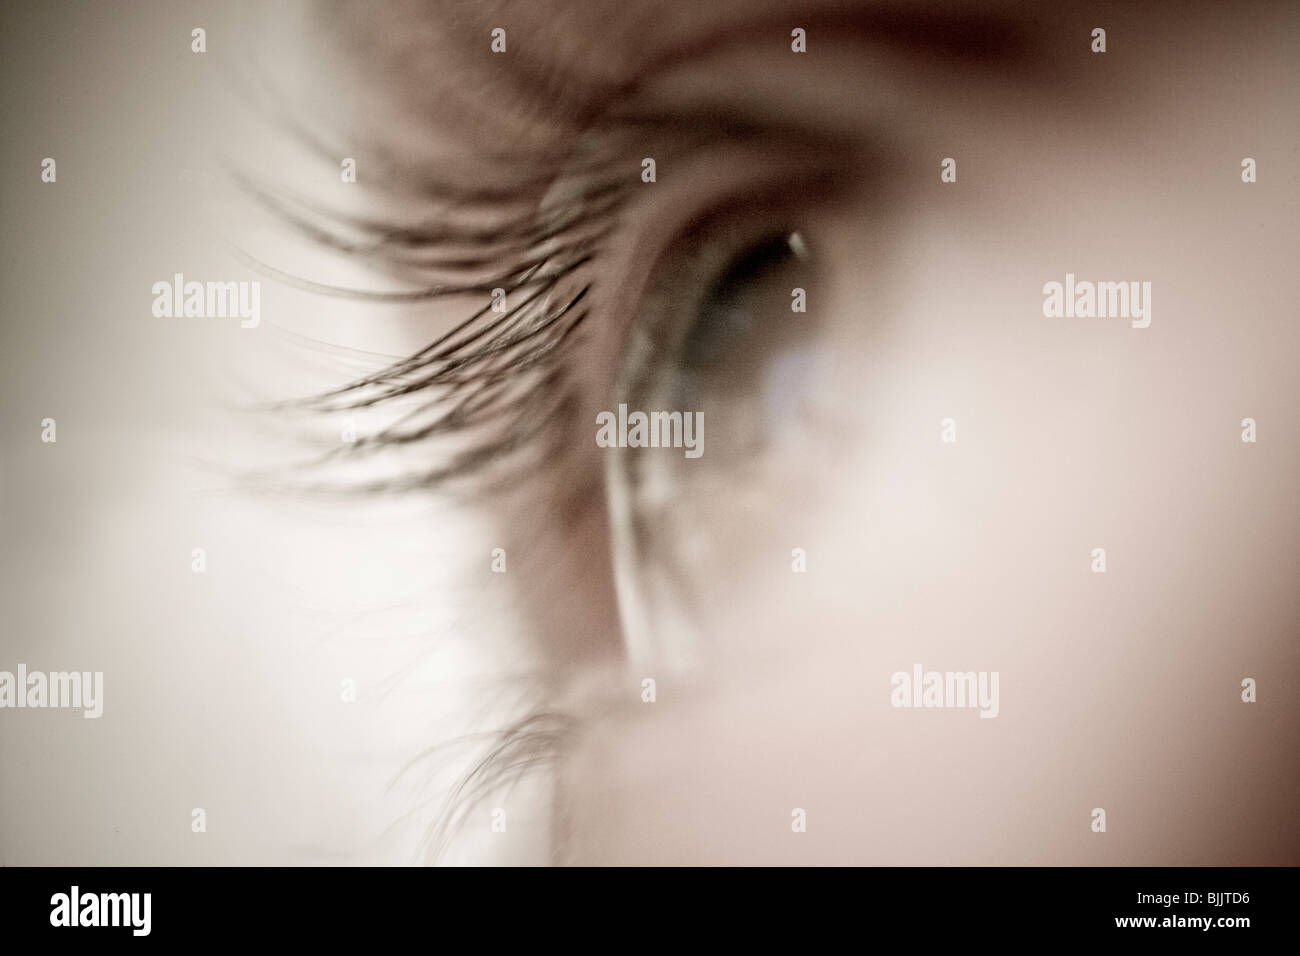 Close-up of woman's eye and eyelashes looking off in distance, soft and fuzzy, monochromatic - Stock Image